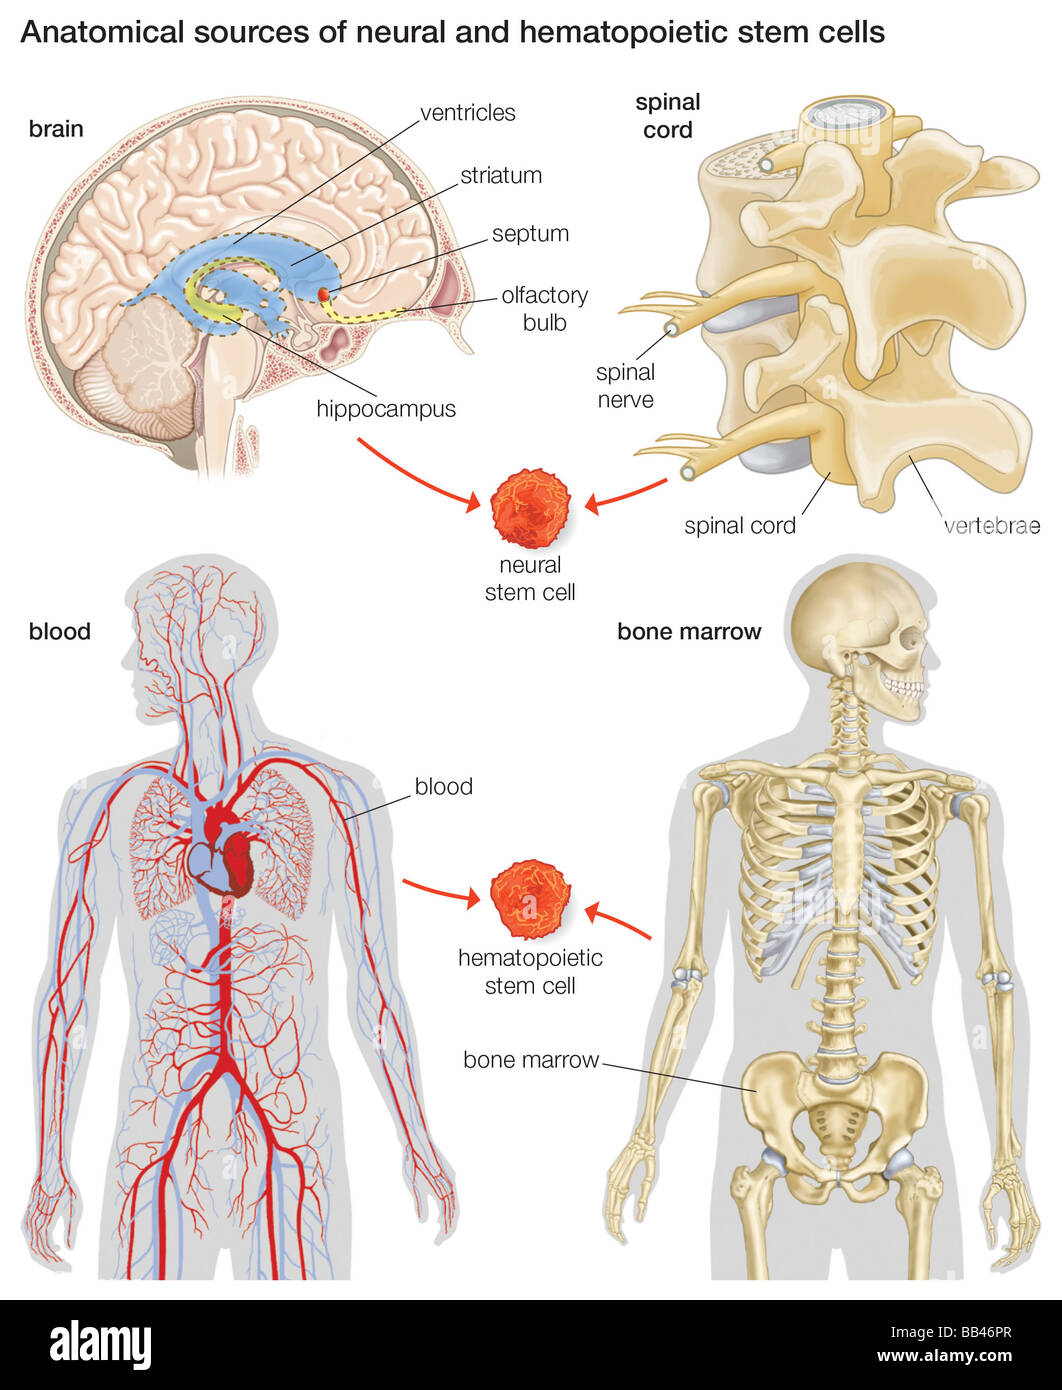 Anatomical sources of neural and hematopoietic stem cells Stock ...